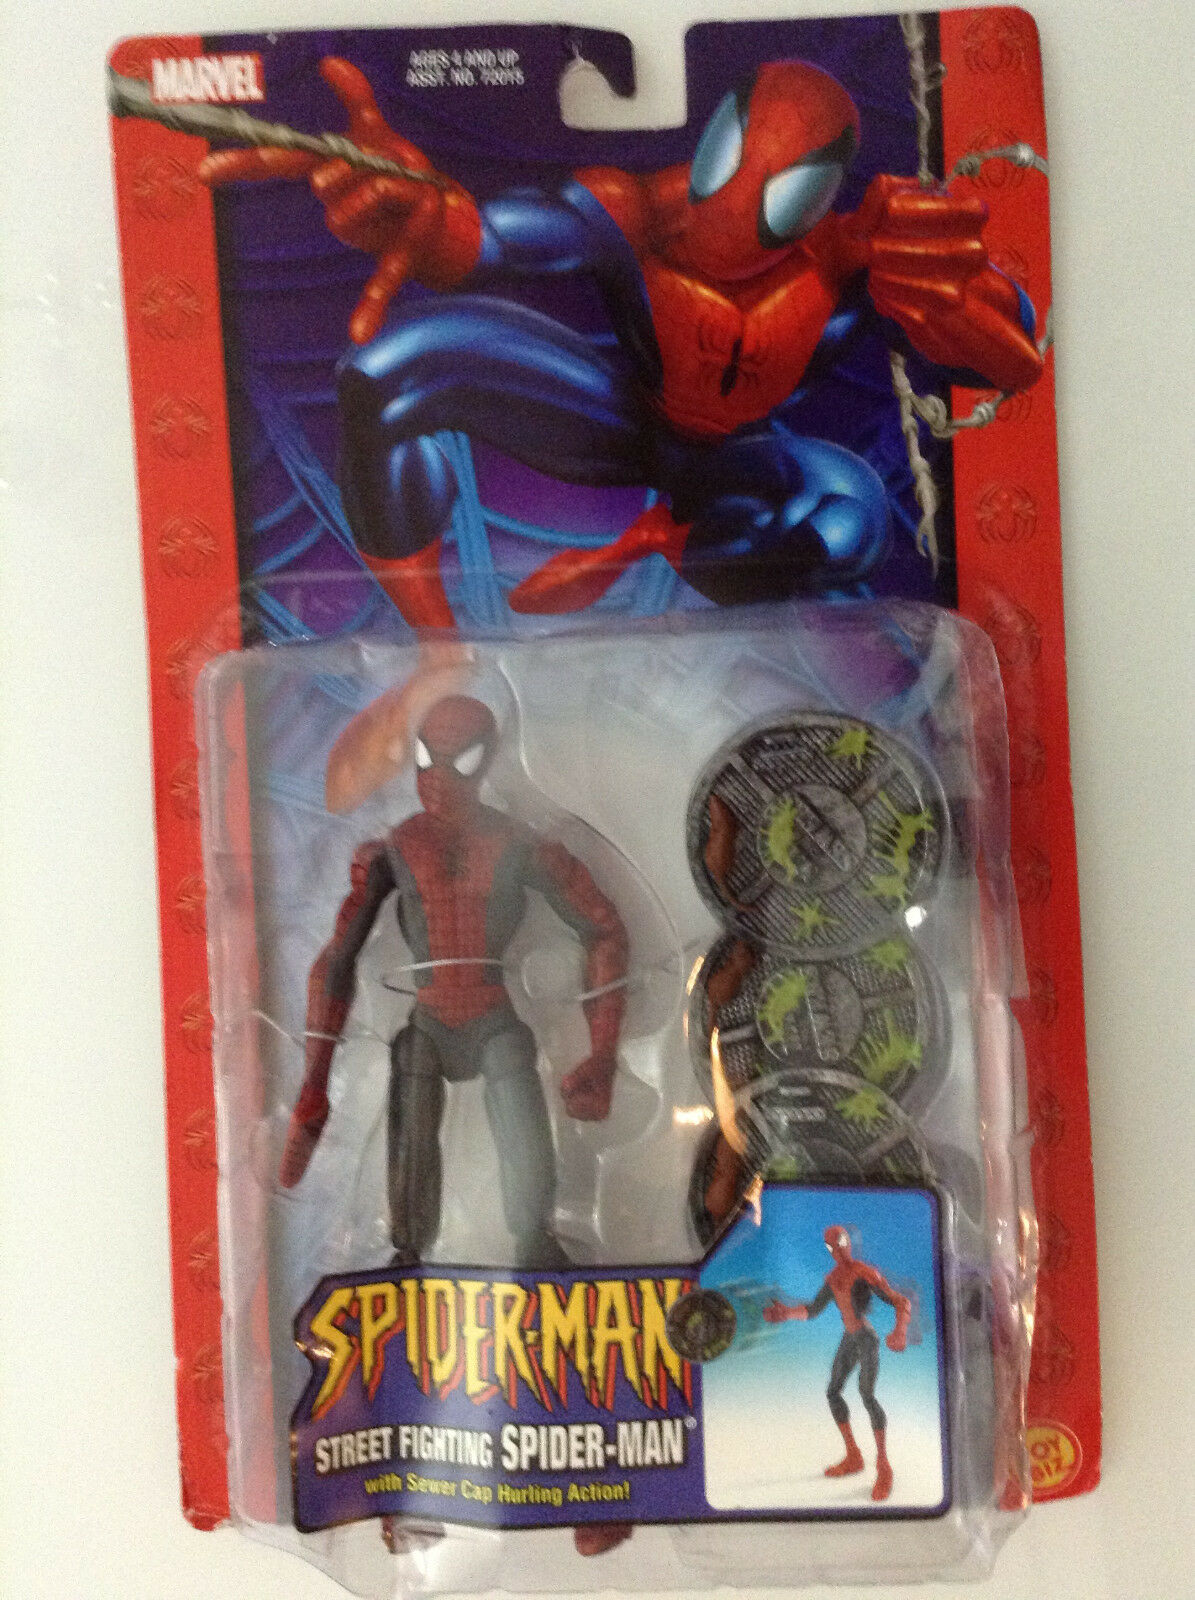 SPIDER-MAN STREET FIGHTING FIGURE 6  TOYBIZ CLASSIC 2005 NEW MARVEL(NOW AMAZING1